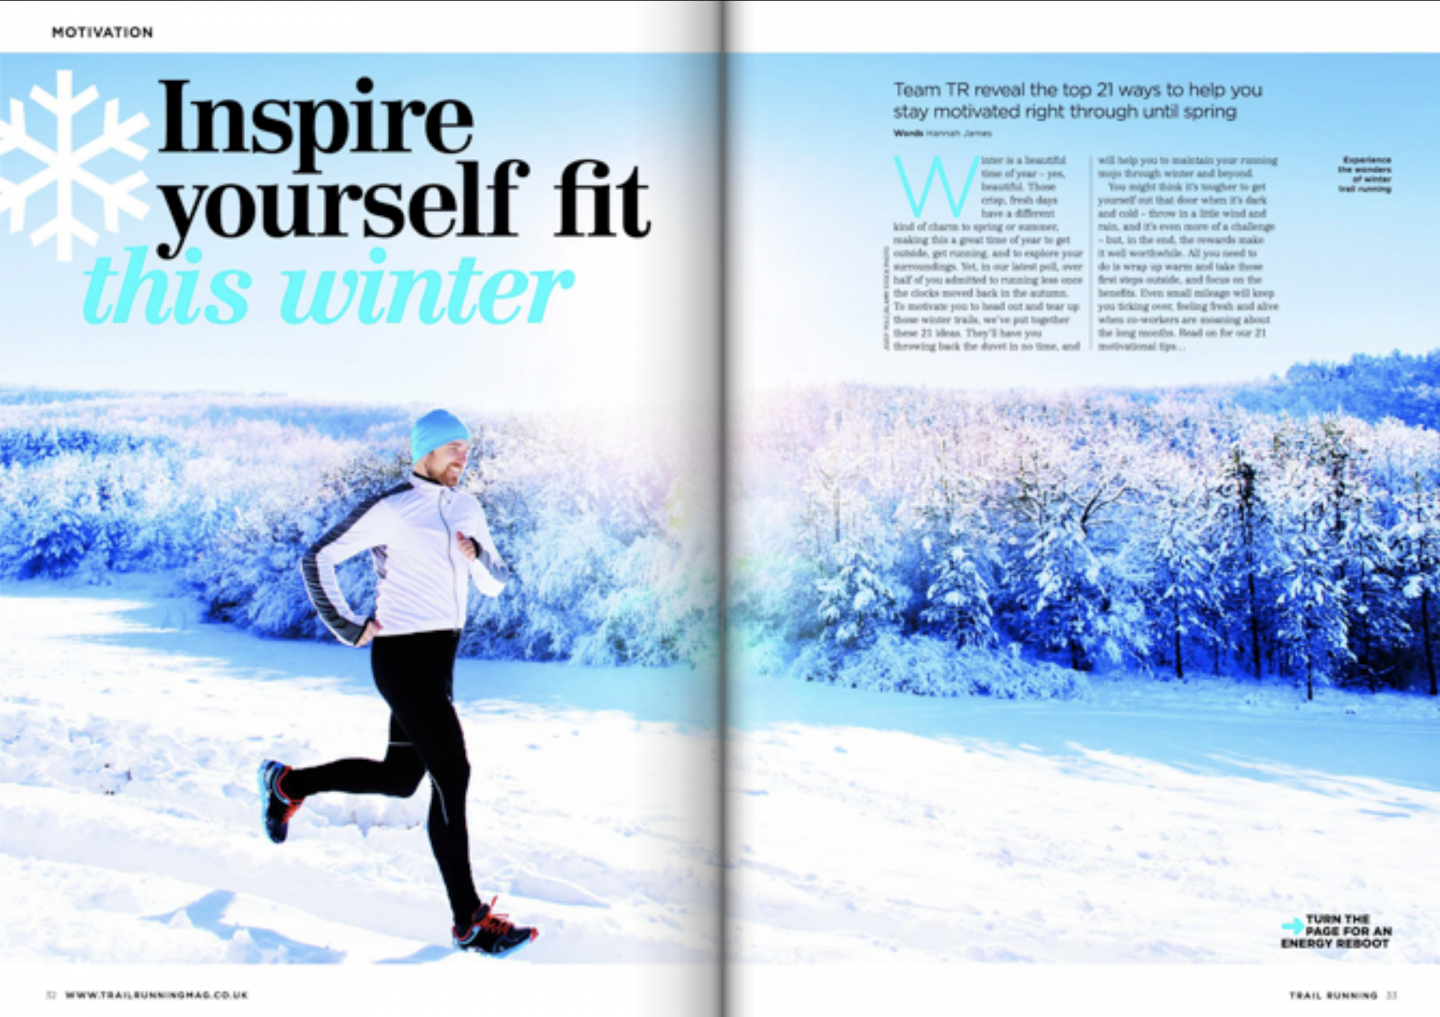 My Trail Running magazine feature: inspire yourself fit | Go on, you know you want to!